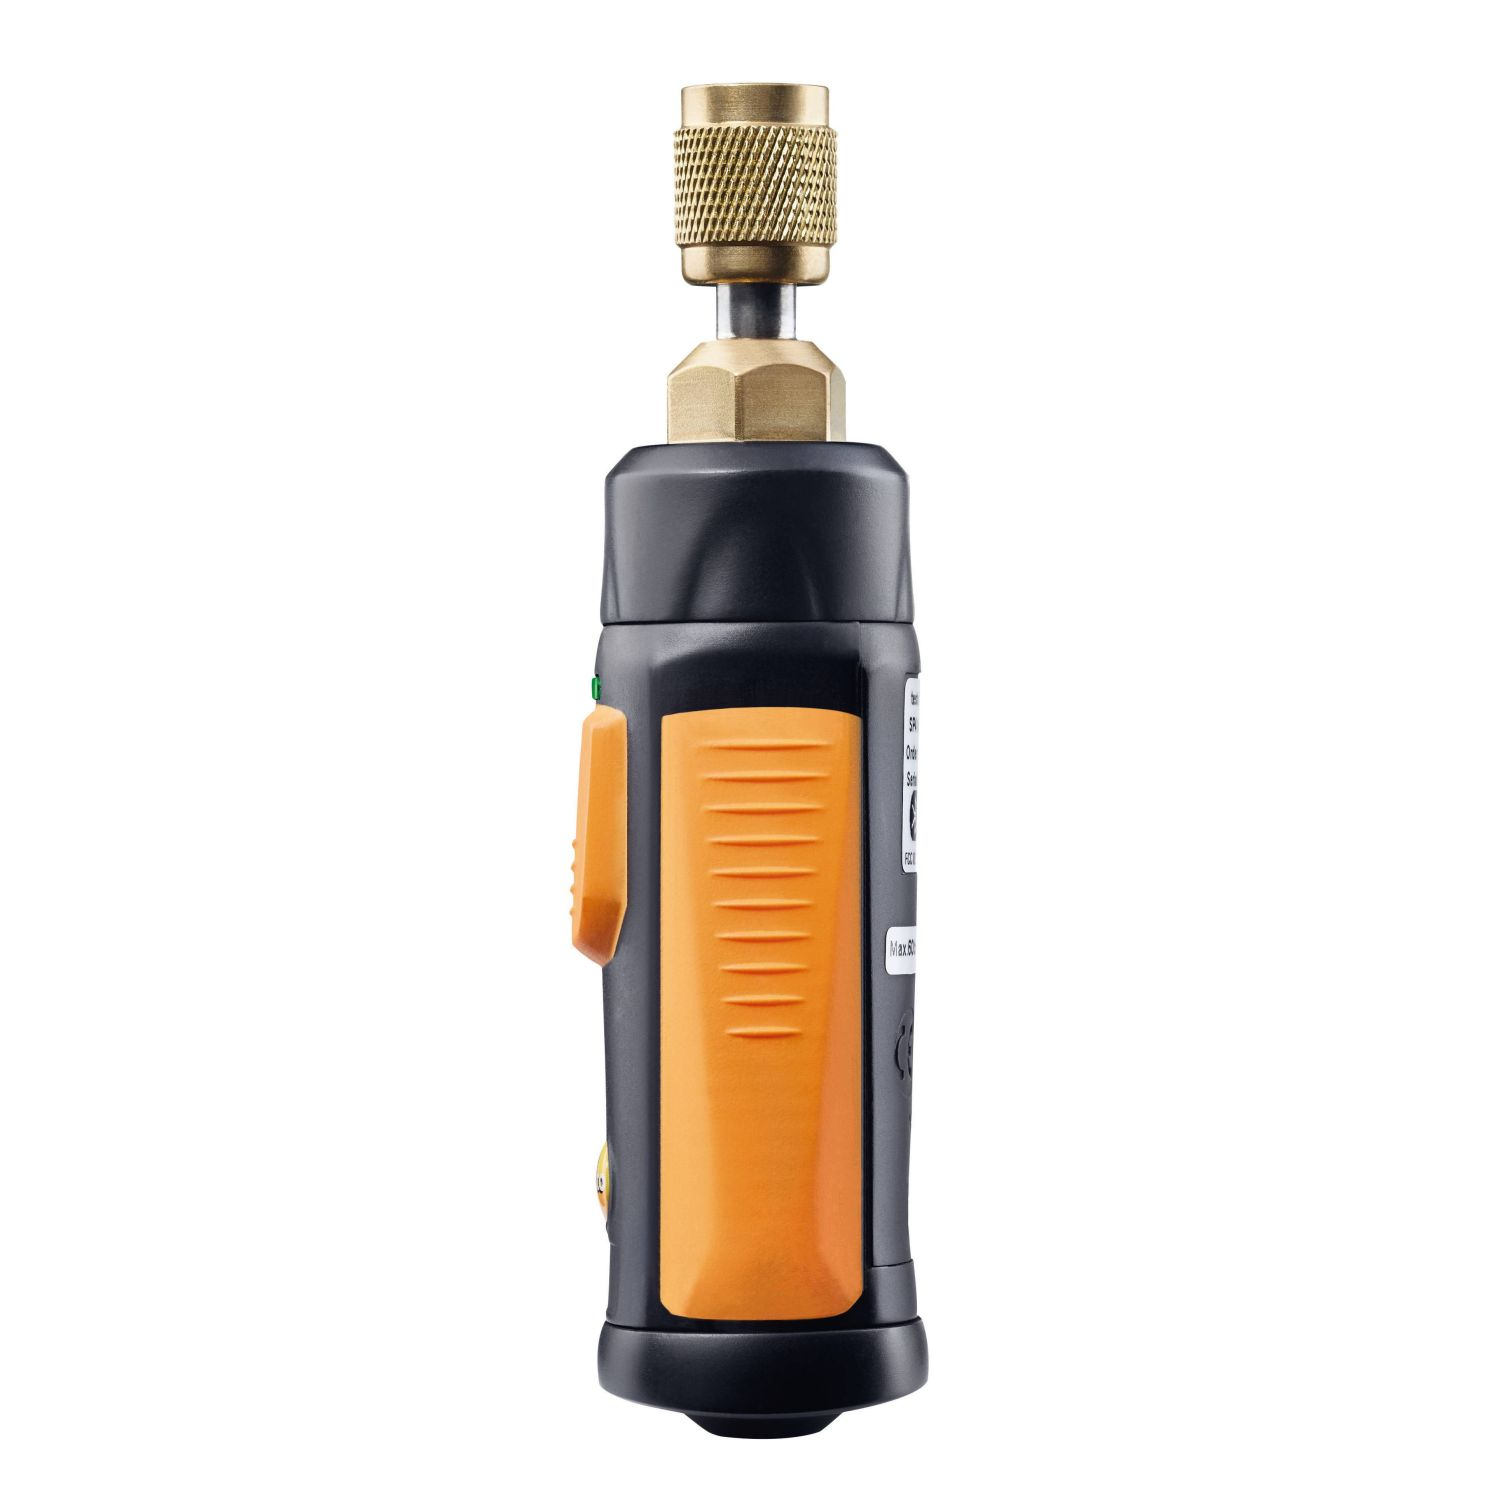 Testo 549i High-Pressure Measuring Instrument - Smart Probe